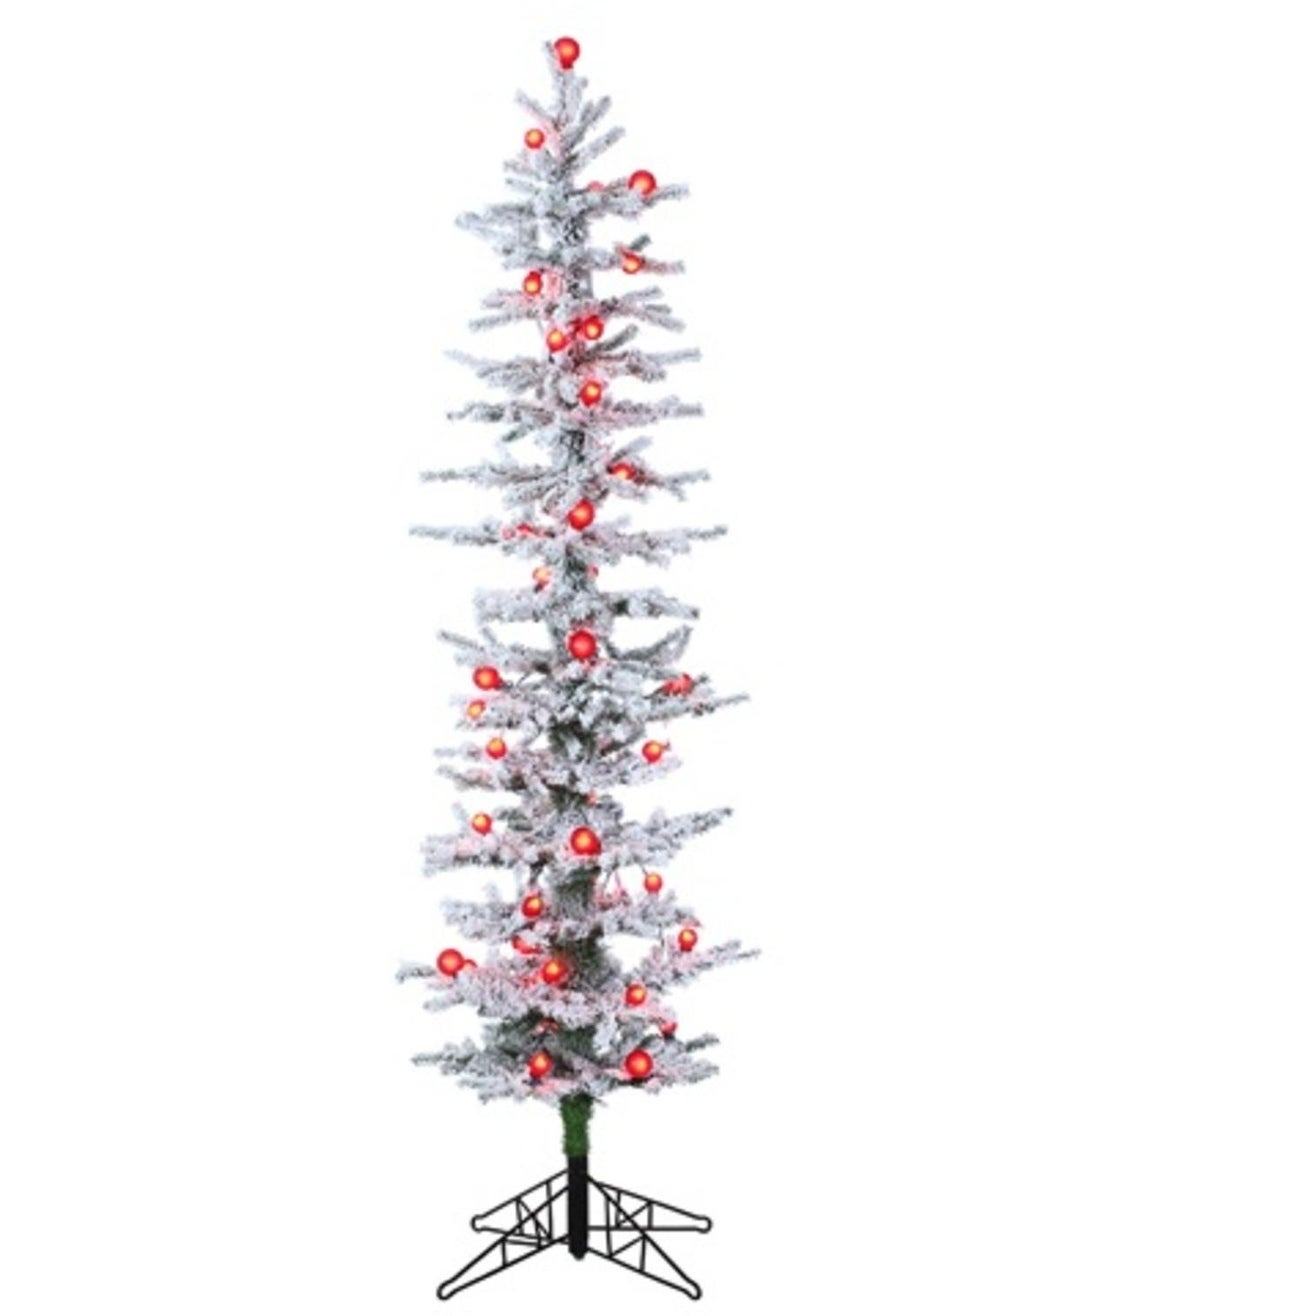 Allstate Floral & Craft 6' Pre-Lit White Snow Flocked Gre...